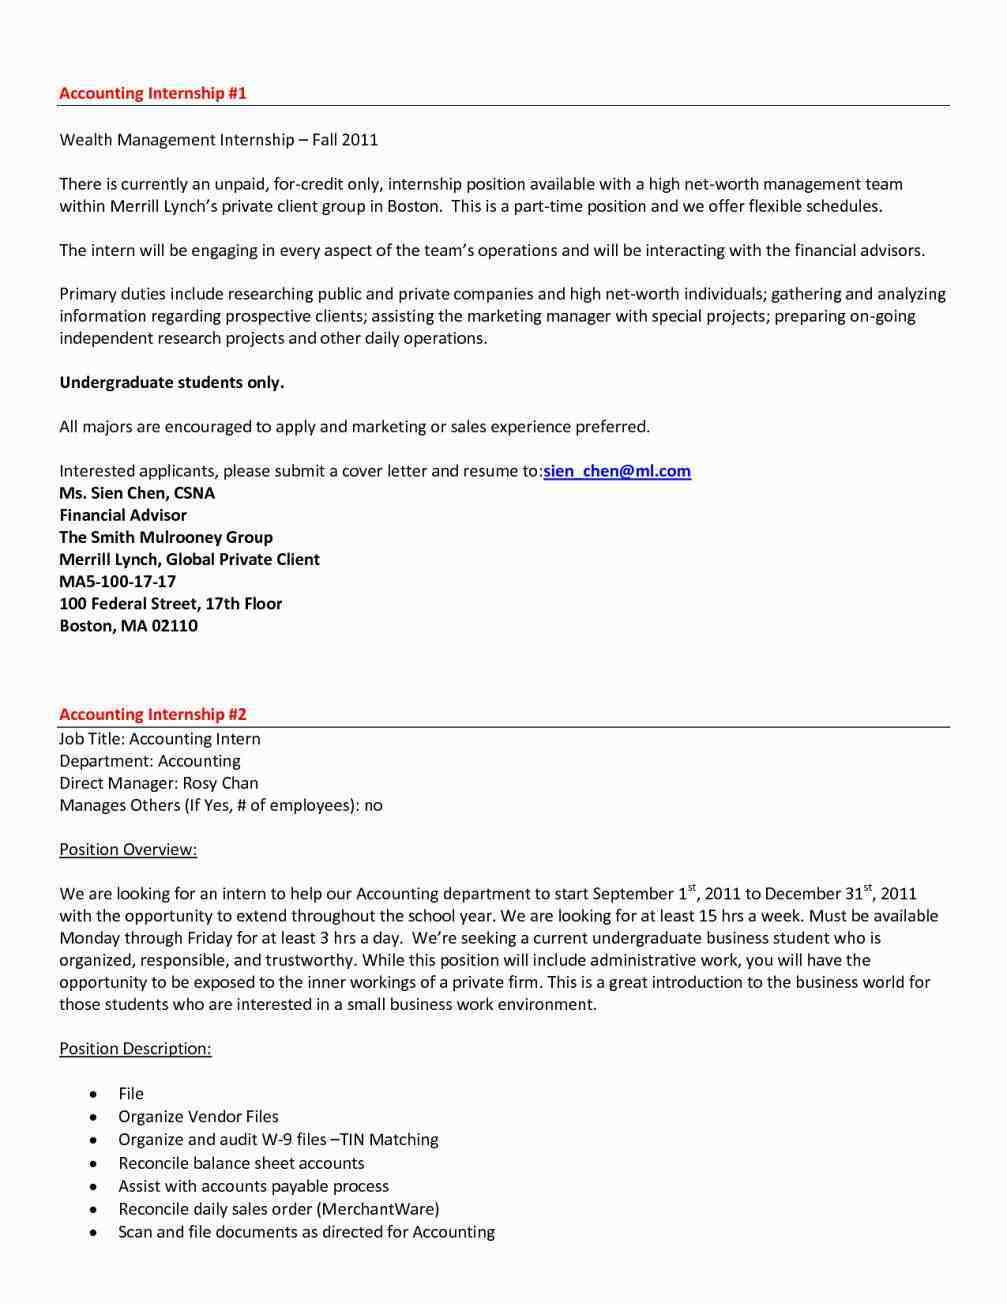 Staff Accountant Cover Letter Examples Pin By Joanna Keysa On Free Tamplate Writing Help Resume Cover